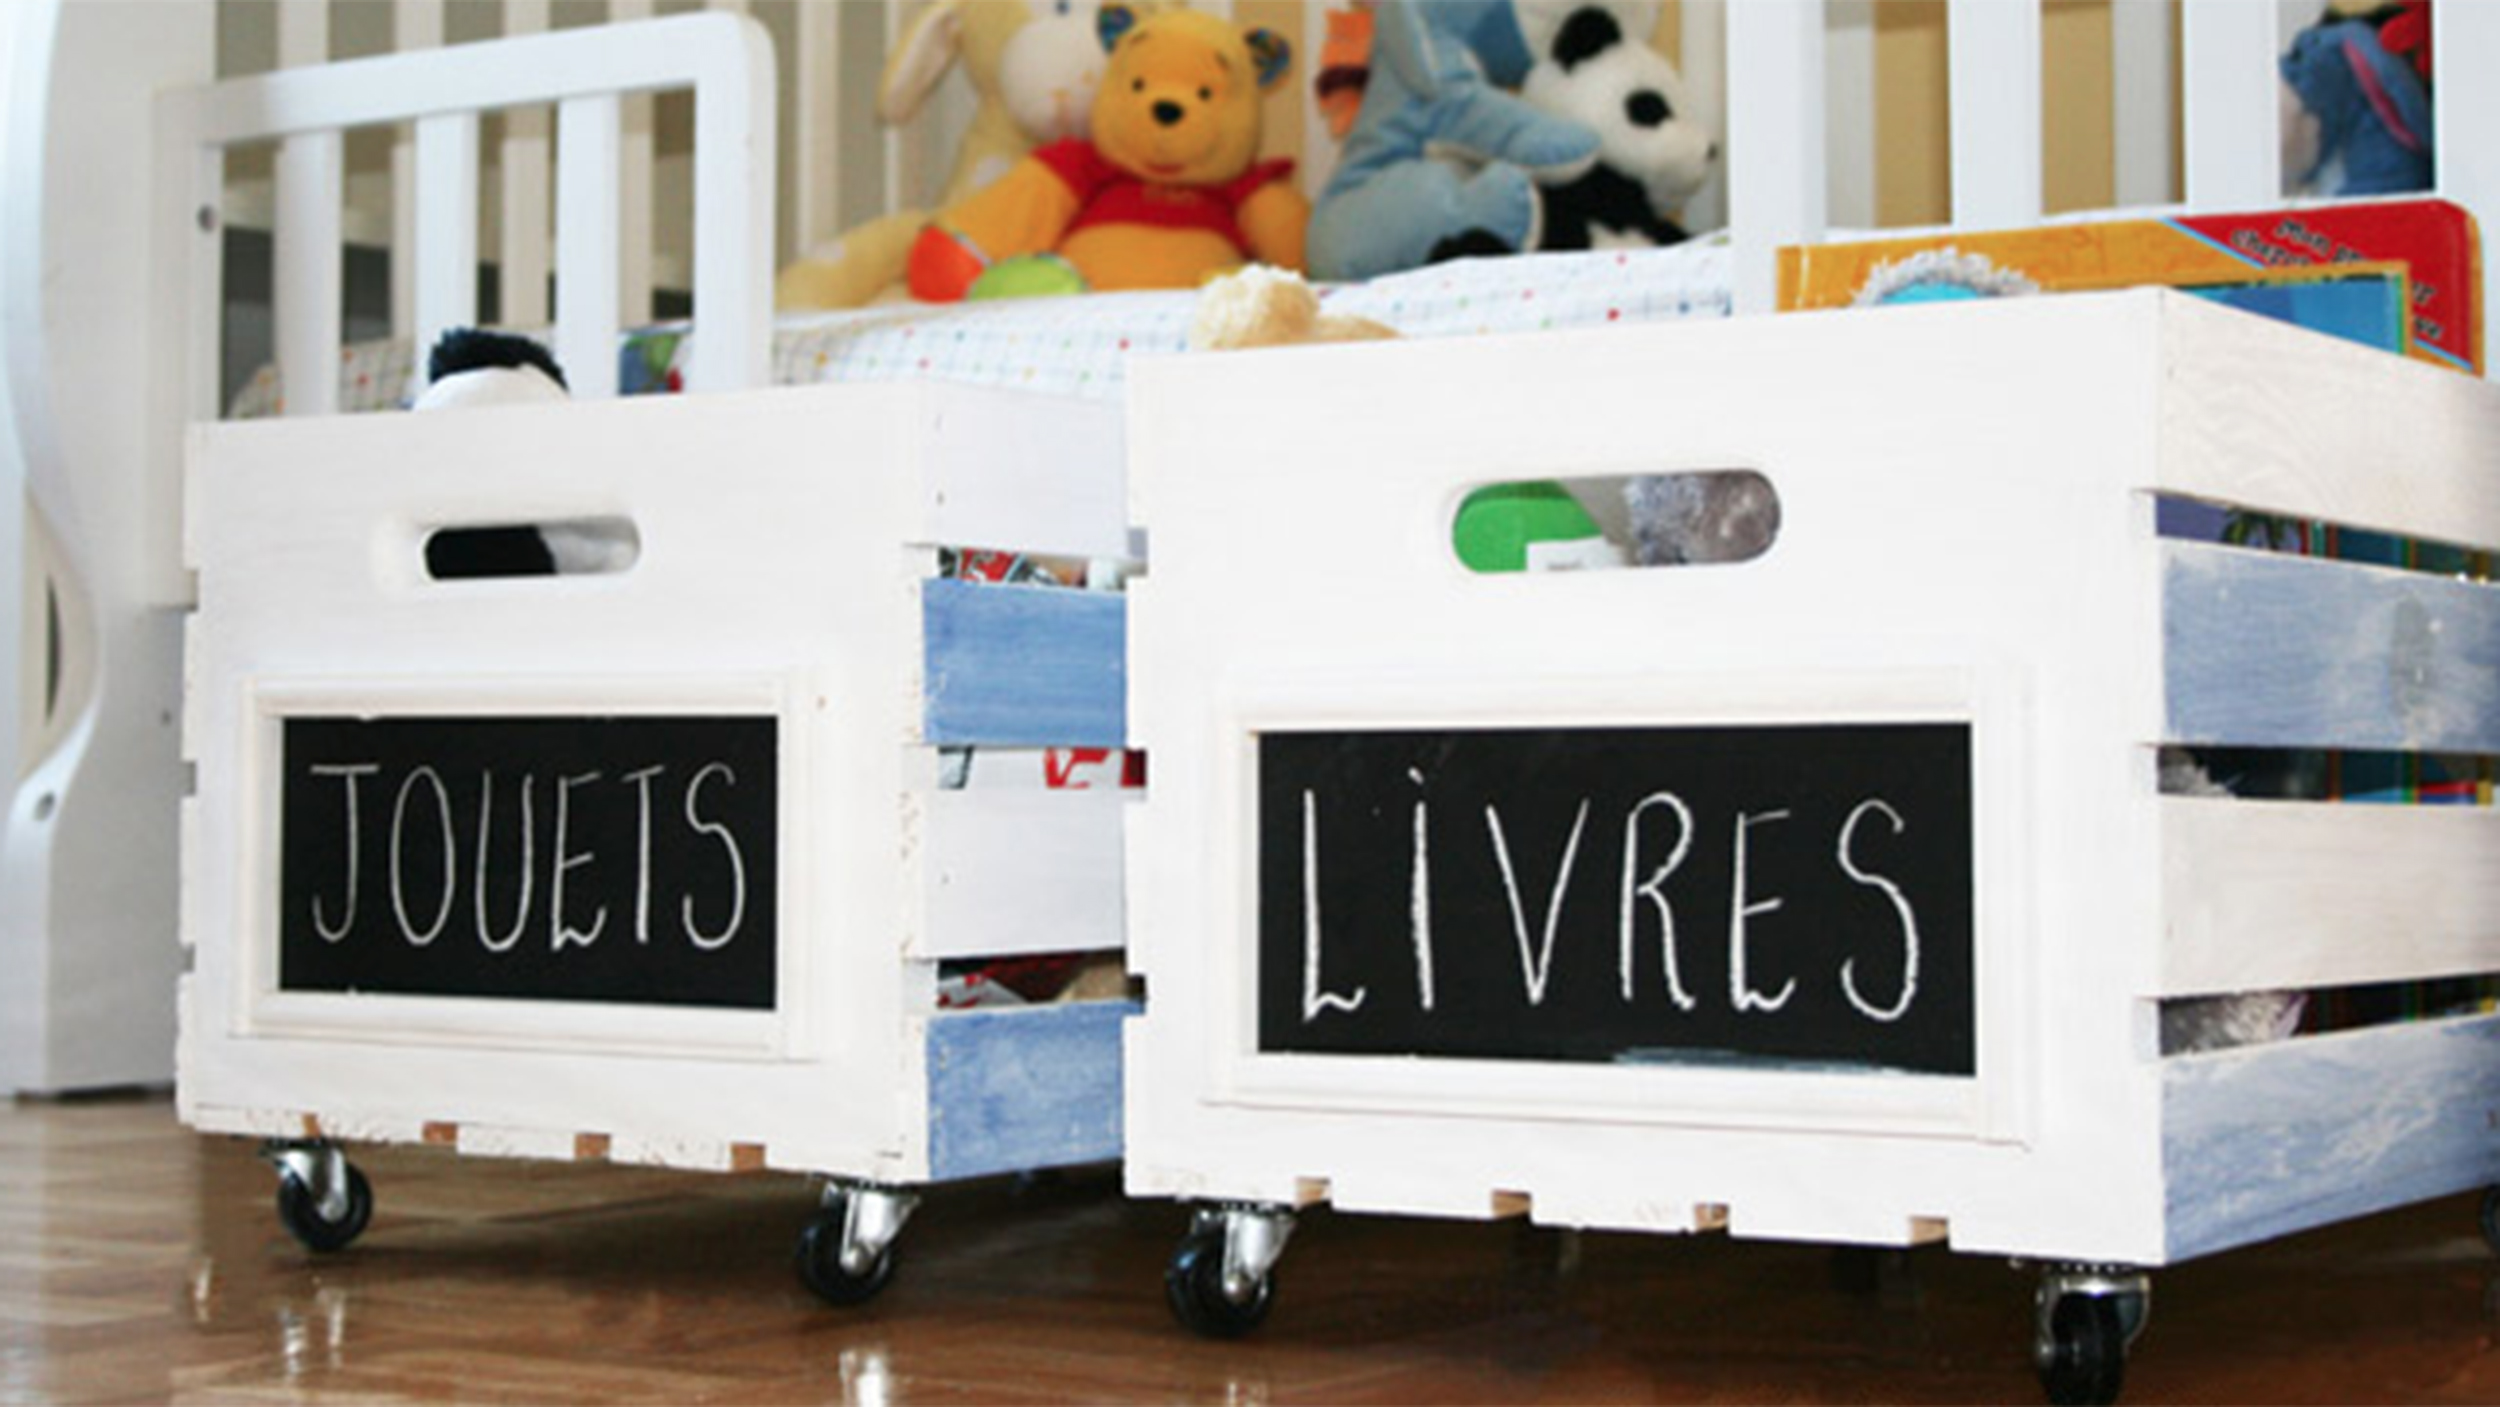 Kids Room Storage Ideas Hide The Mess With Style 9 Creative D I Y Toy Storage Solutions